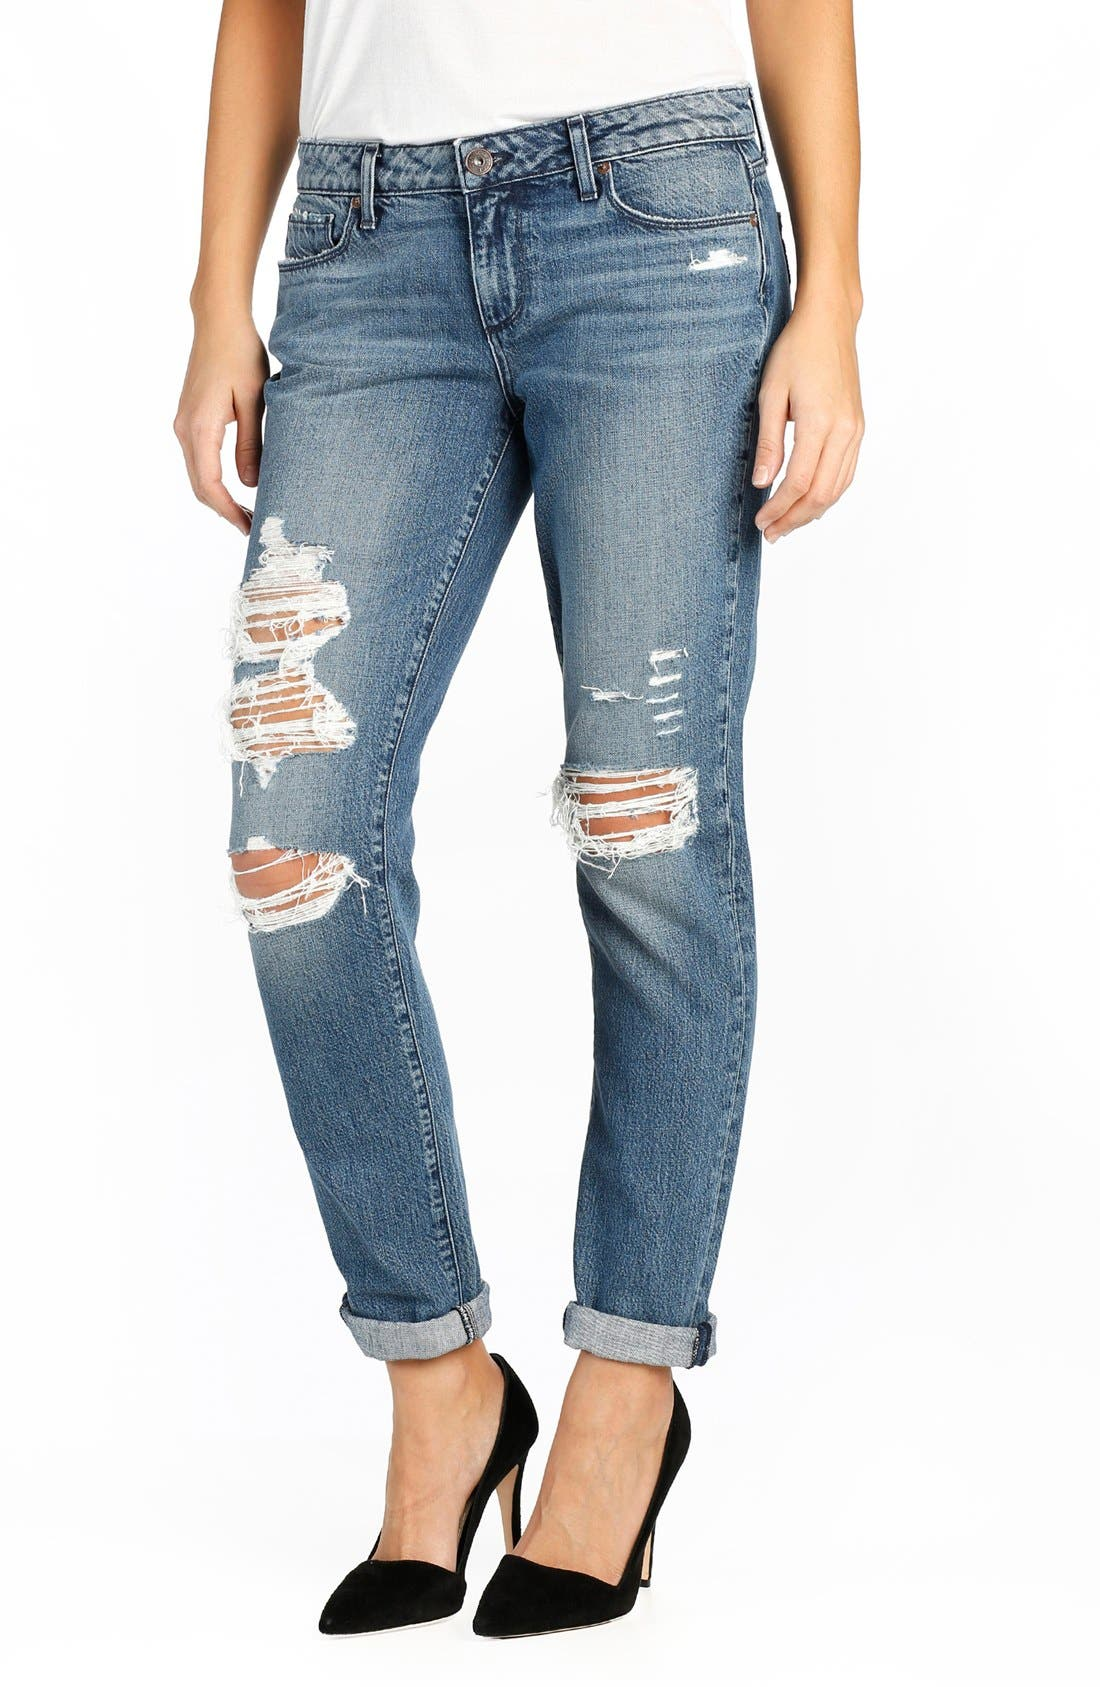 Main Image - PAIGE 'Jimmy Jimmy' Destroyed Skinny Jeans (Westley Destructed)